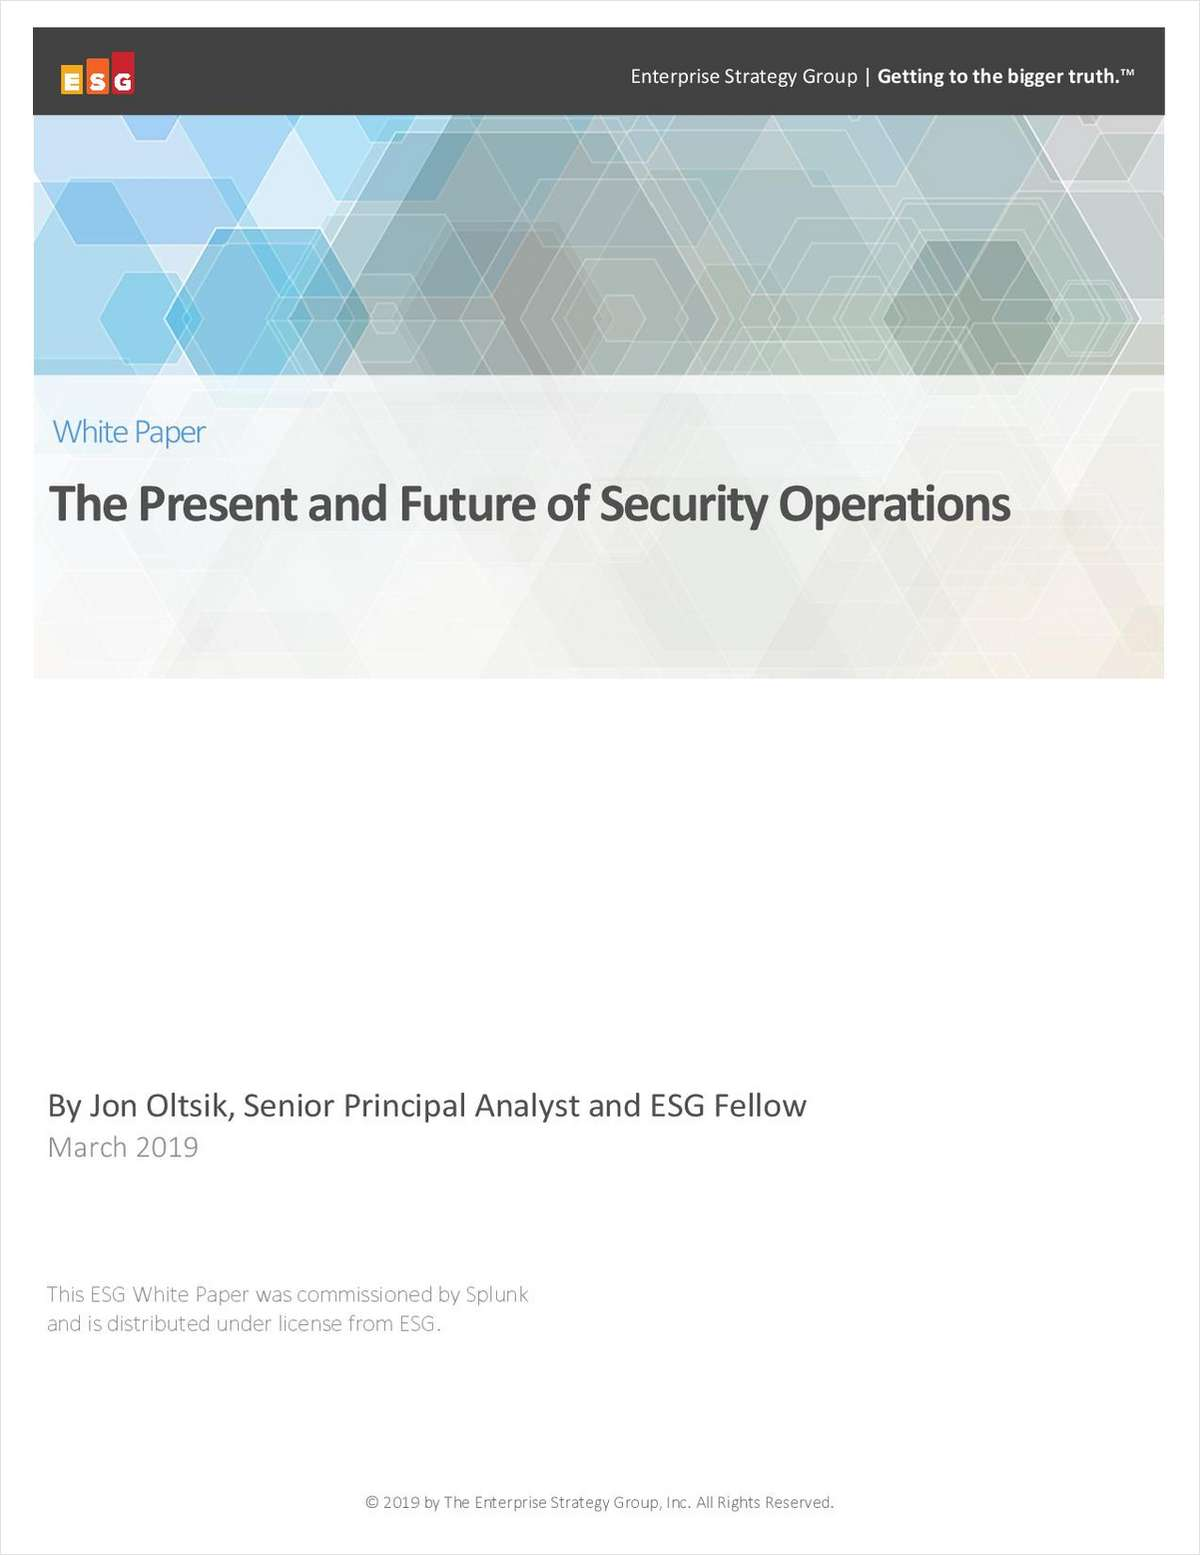 The Present and Future of Security Operations